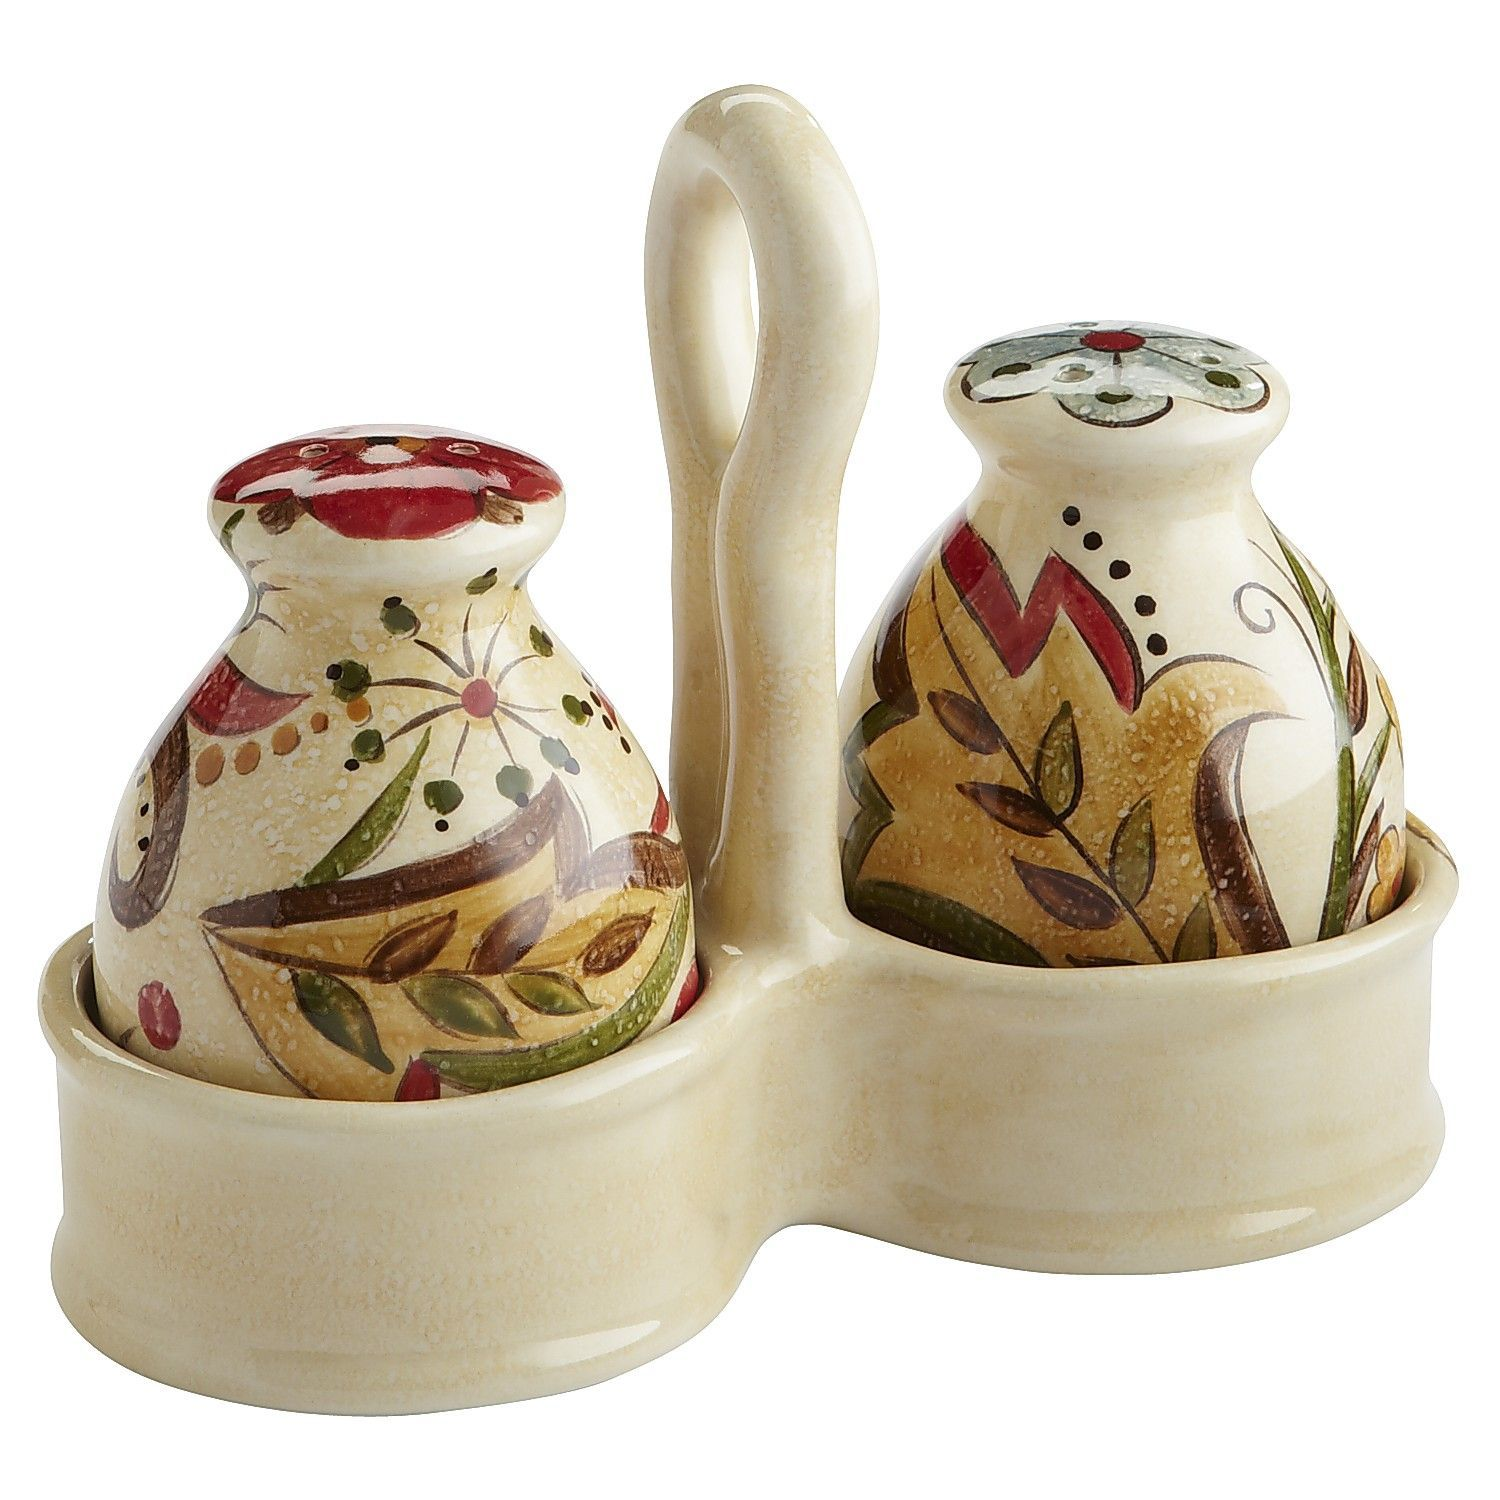 Carynthum Salt & Pepper Shakers Pier 1 Imports Bend